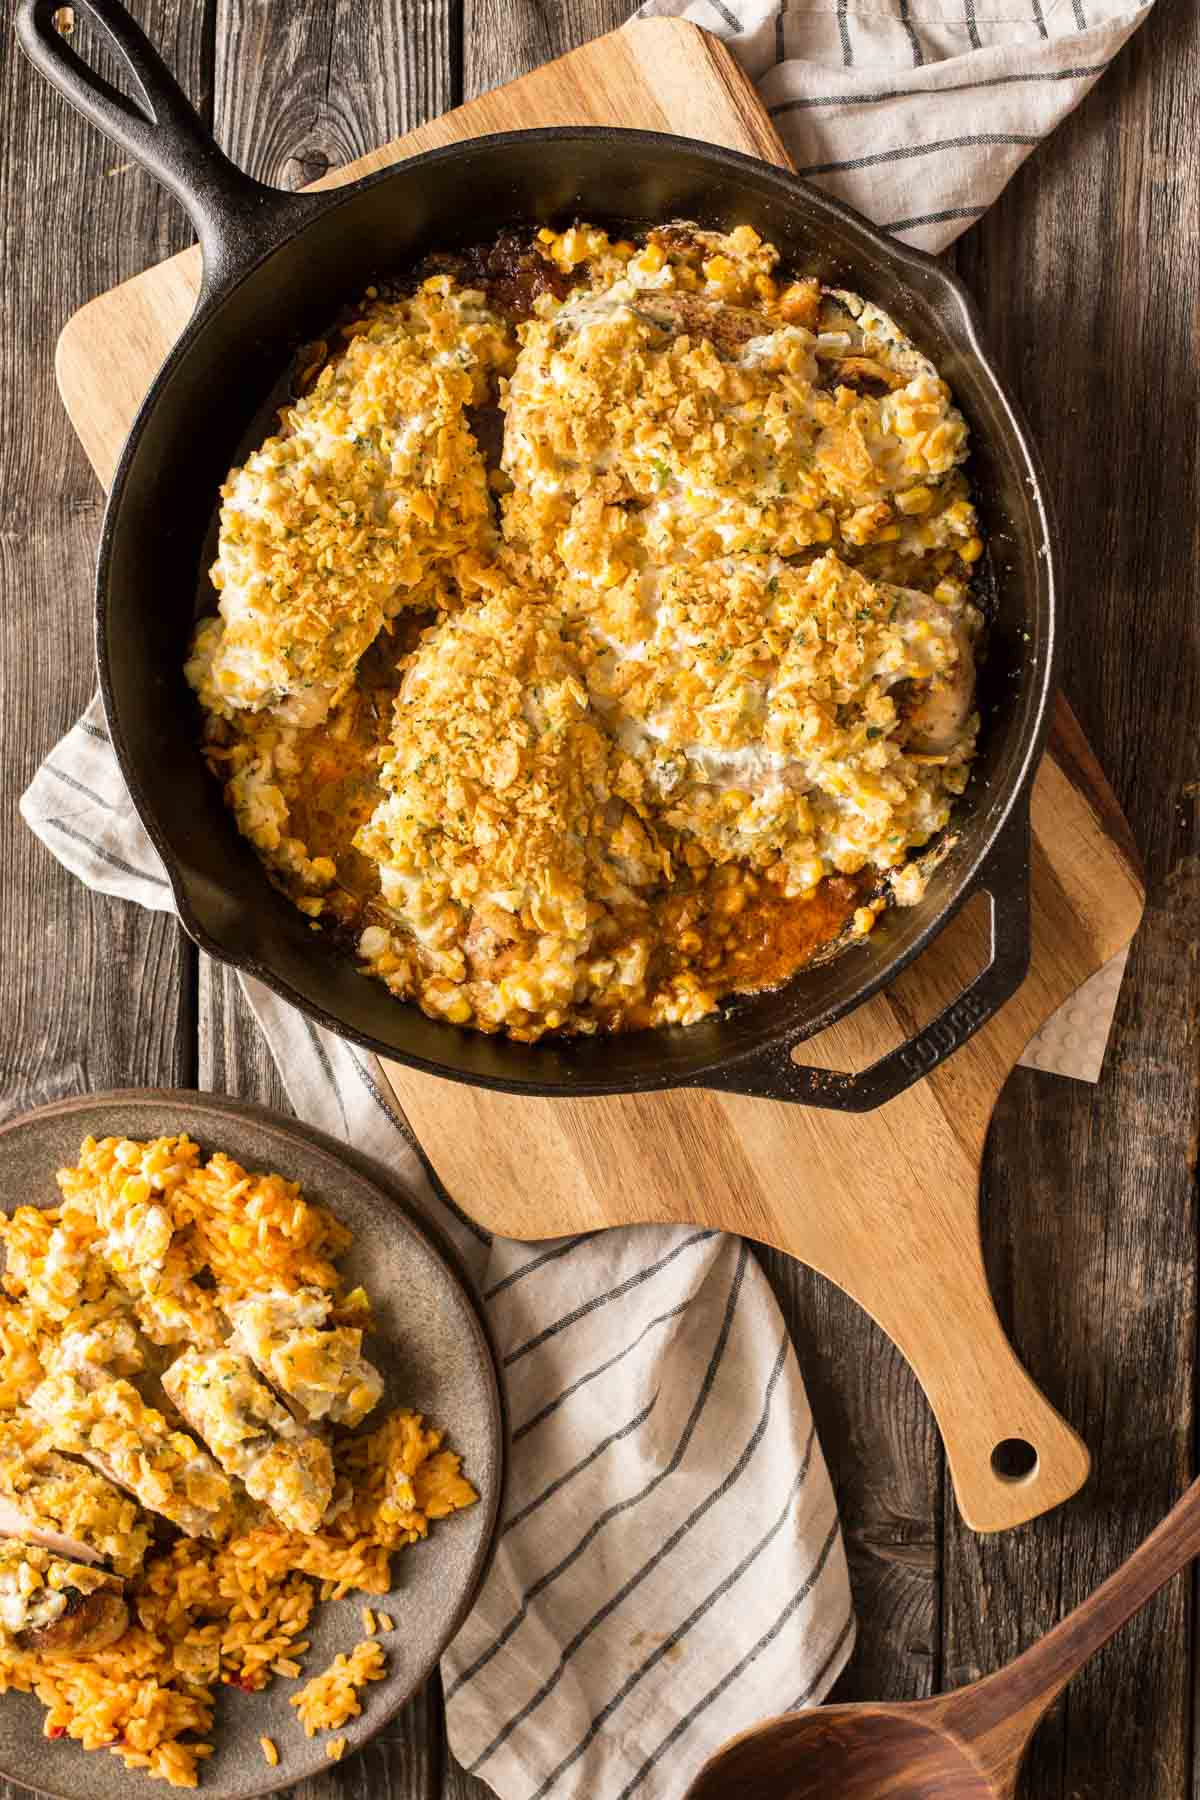 Overhead shot of cast iron skillet with Creamy Cheesy Frito Chicken Skillet on a cutting board.